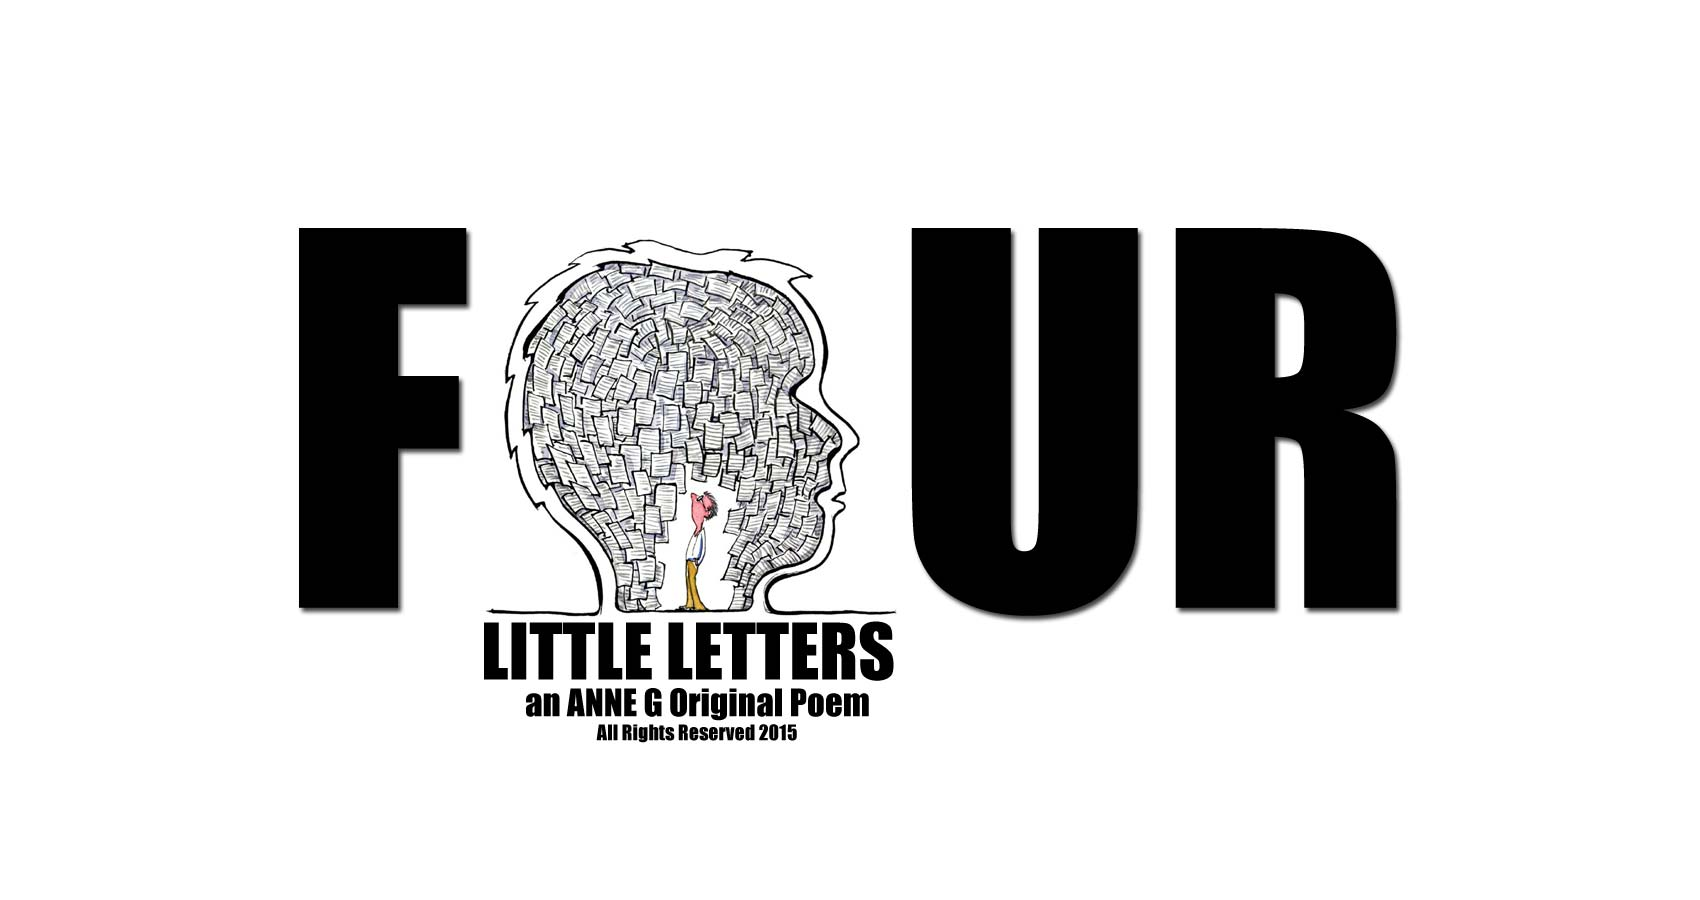 Four Little Letters at spillwords.com poetry by Anne G